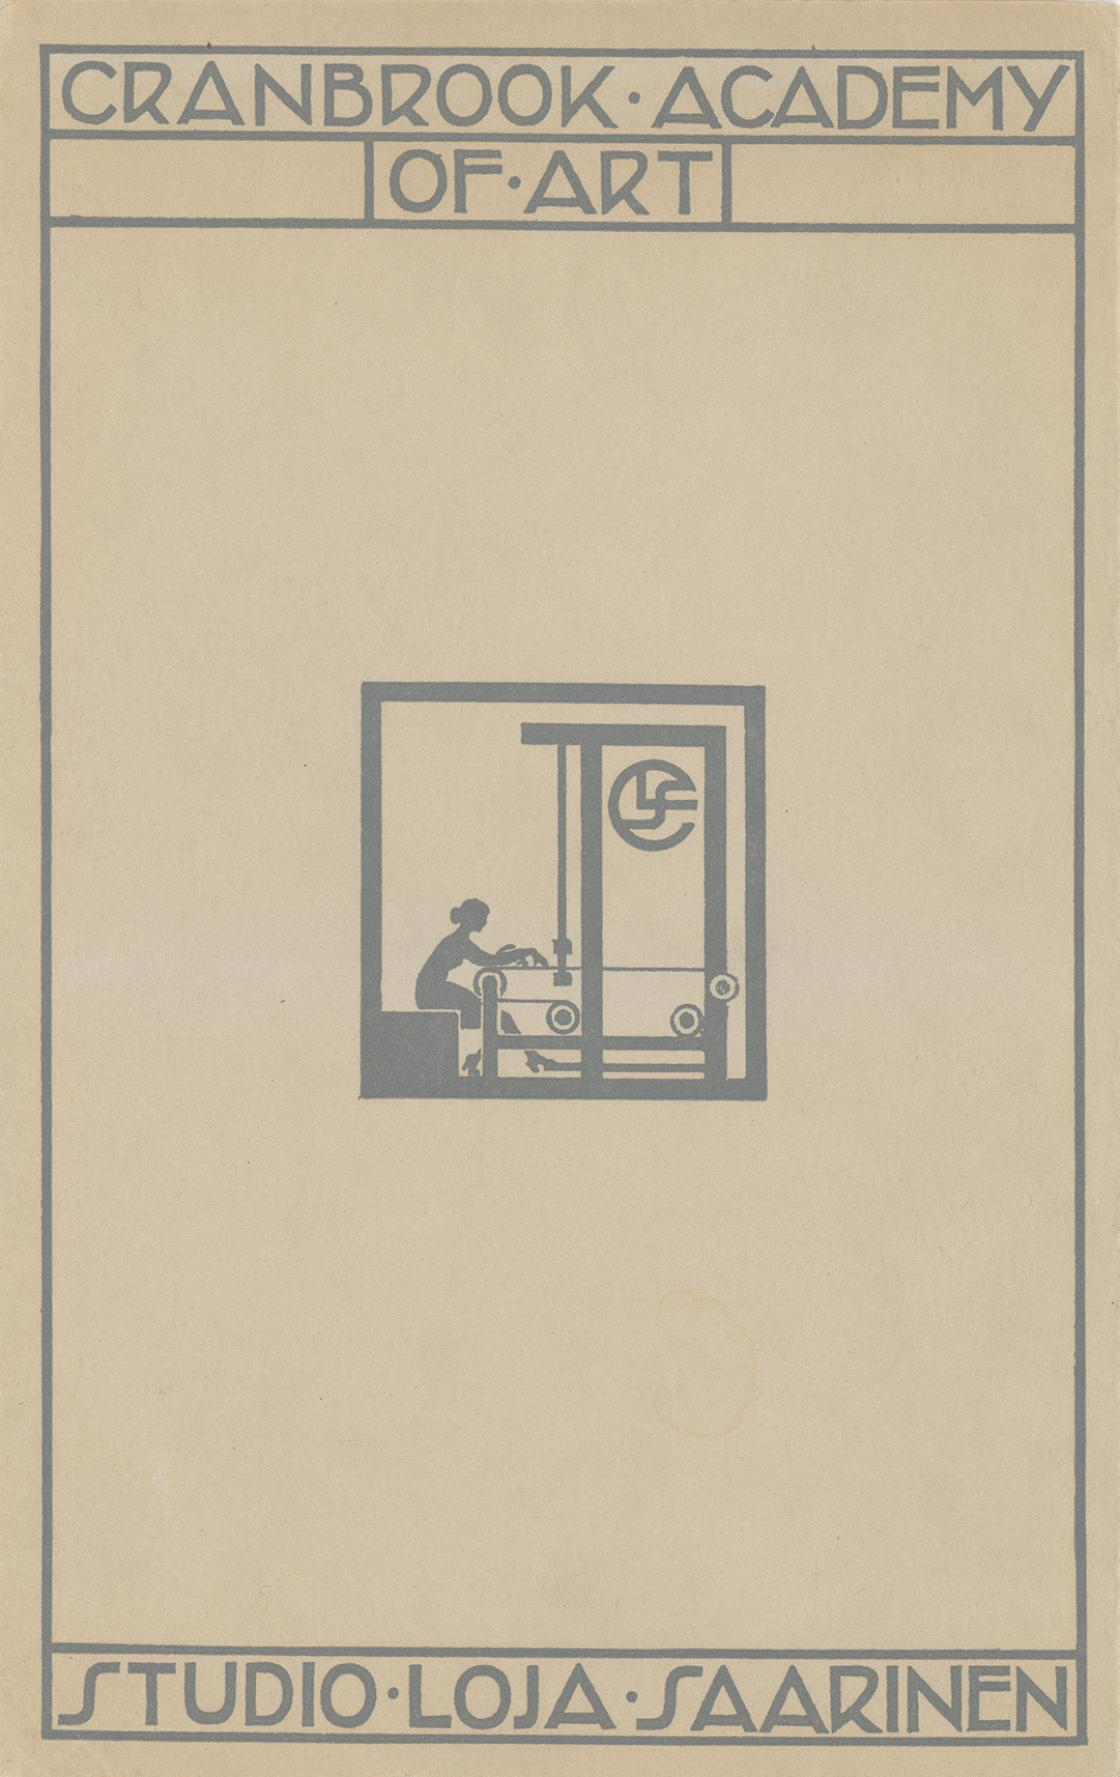 Cover of a Studio Loja Saarinen brochure, c. 1932. Courtesy Cranbrook Archives, Saarinen Family Papers.